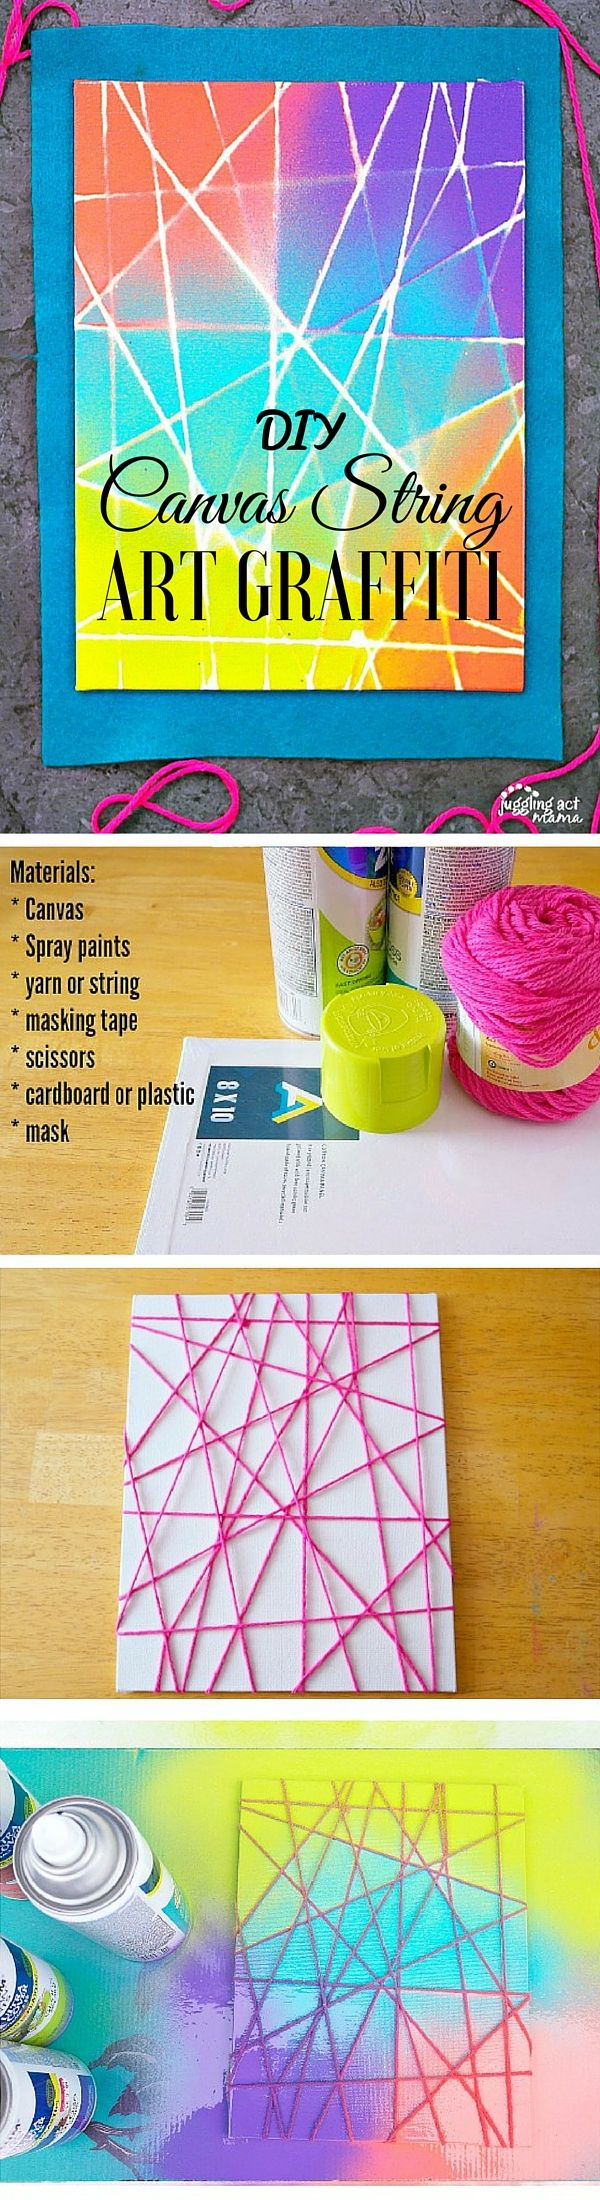 Check out the tutorial: #DIY Canvas String Art Graffiti @istandarddesign